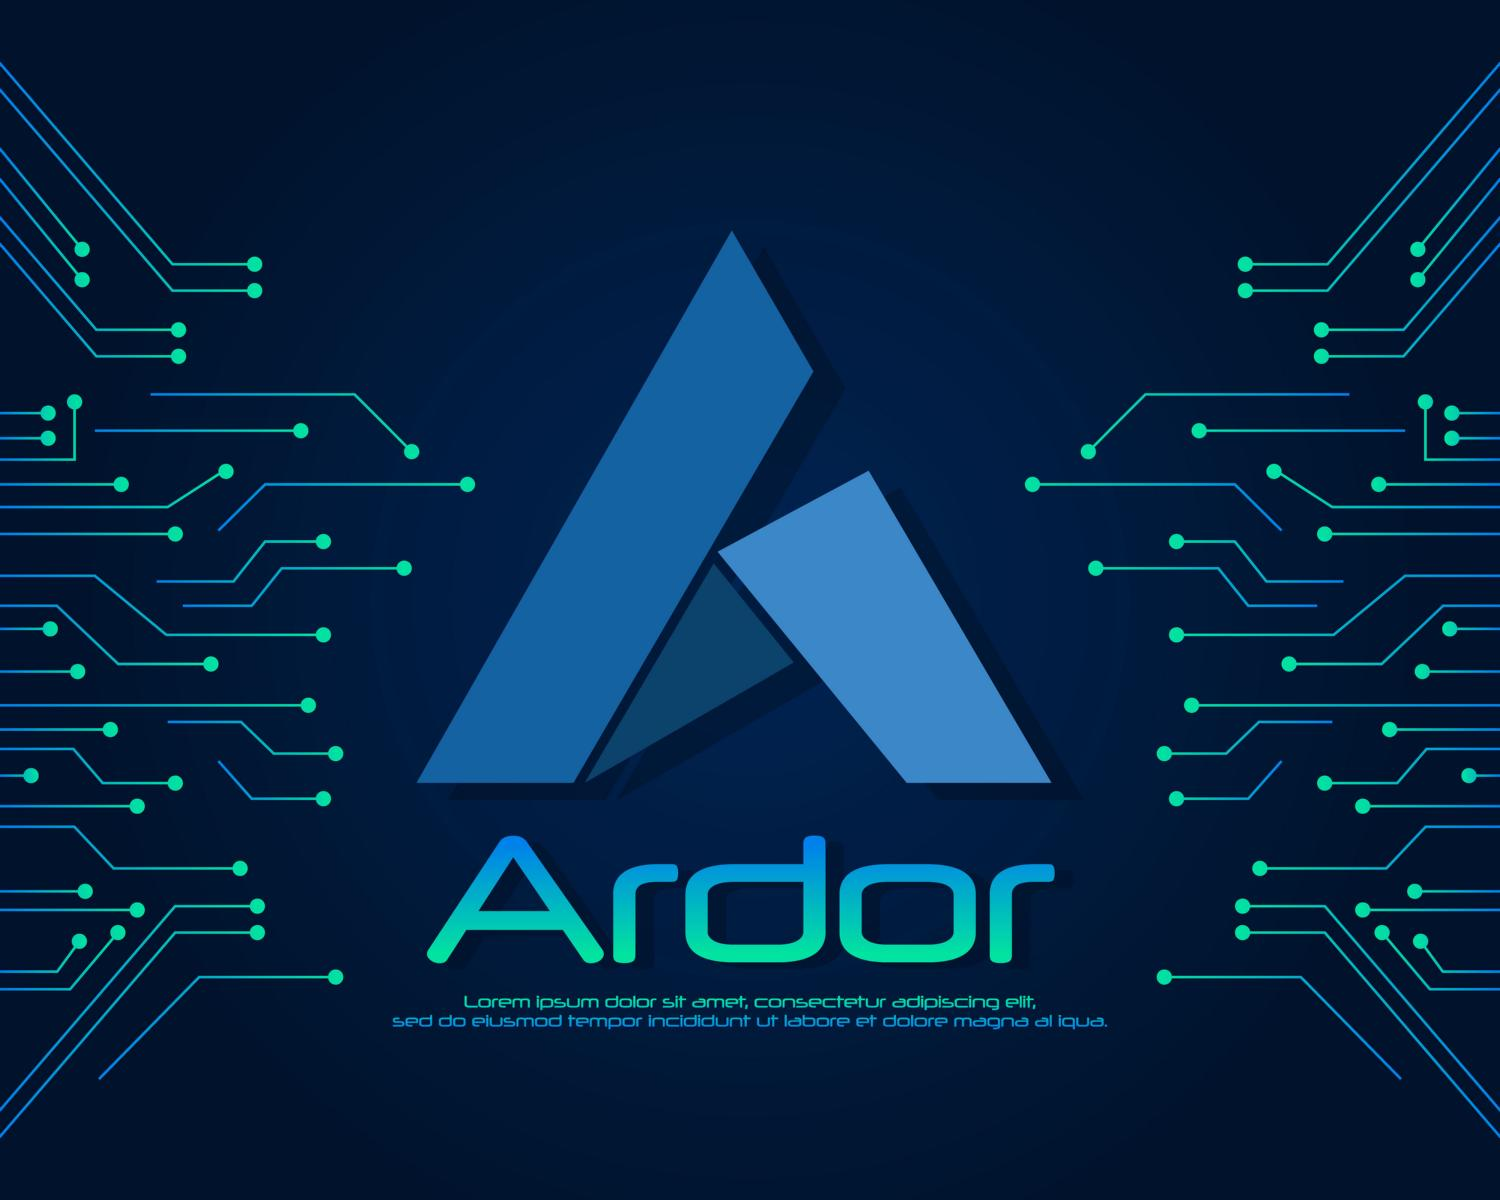 Ardor - A multi-chain platform with a multitude of use cases